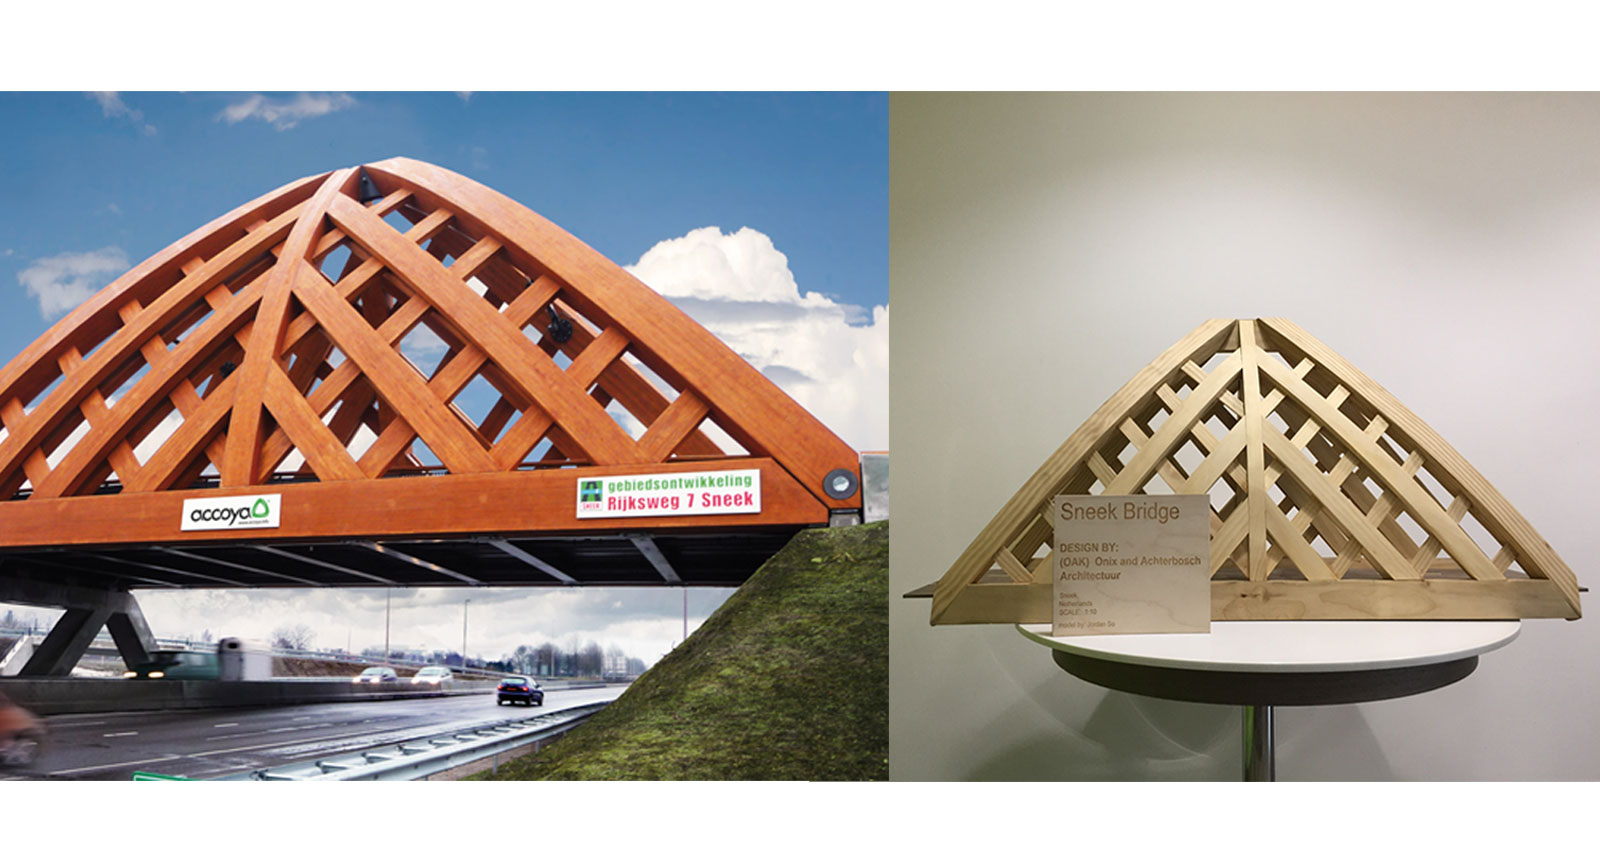 Accoya Sneek Bridge: From the Netherlands to Toronto